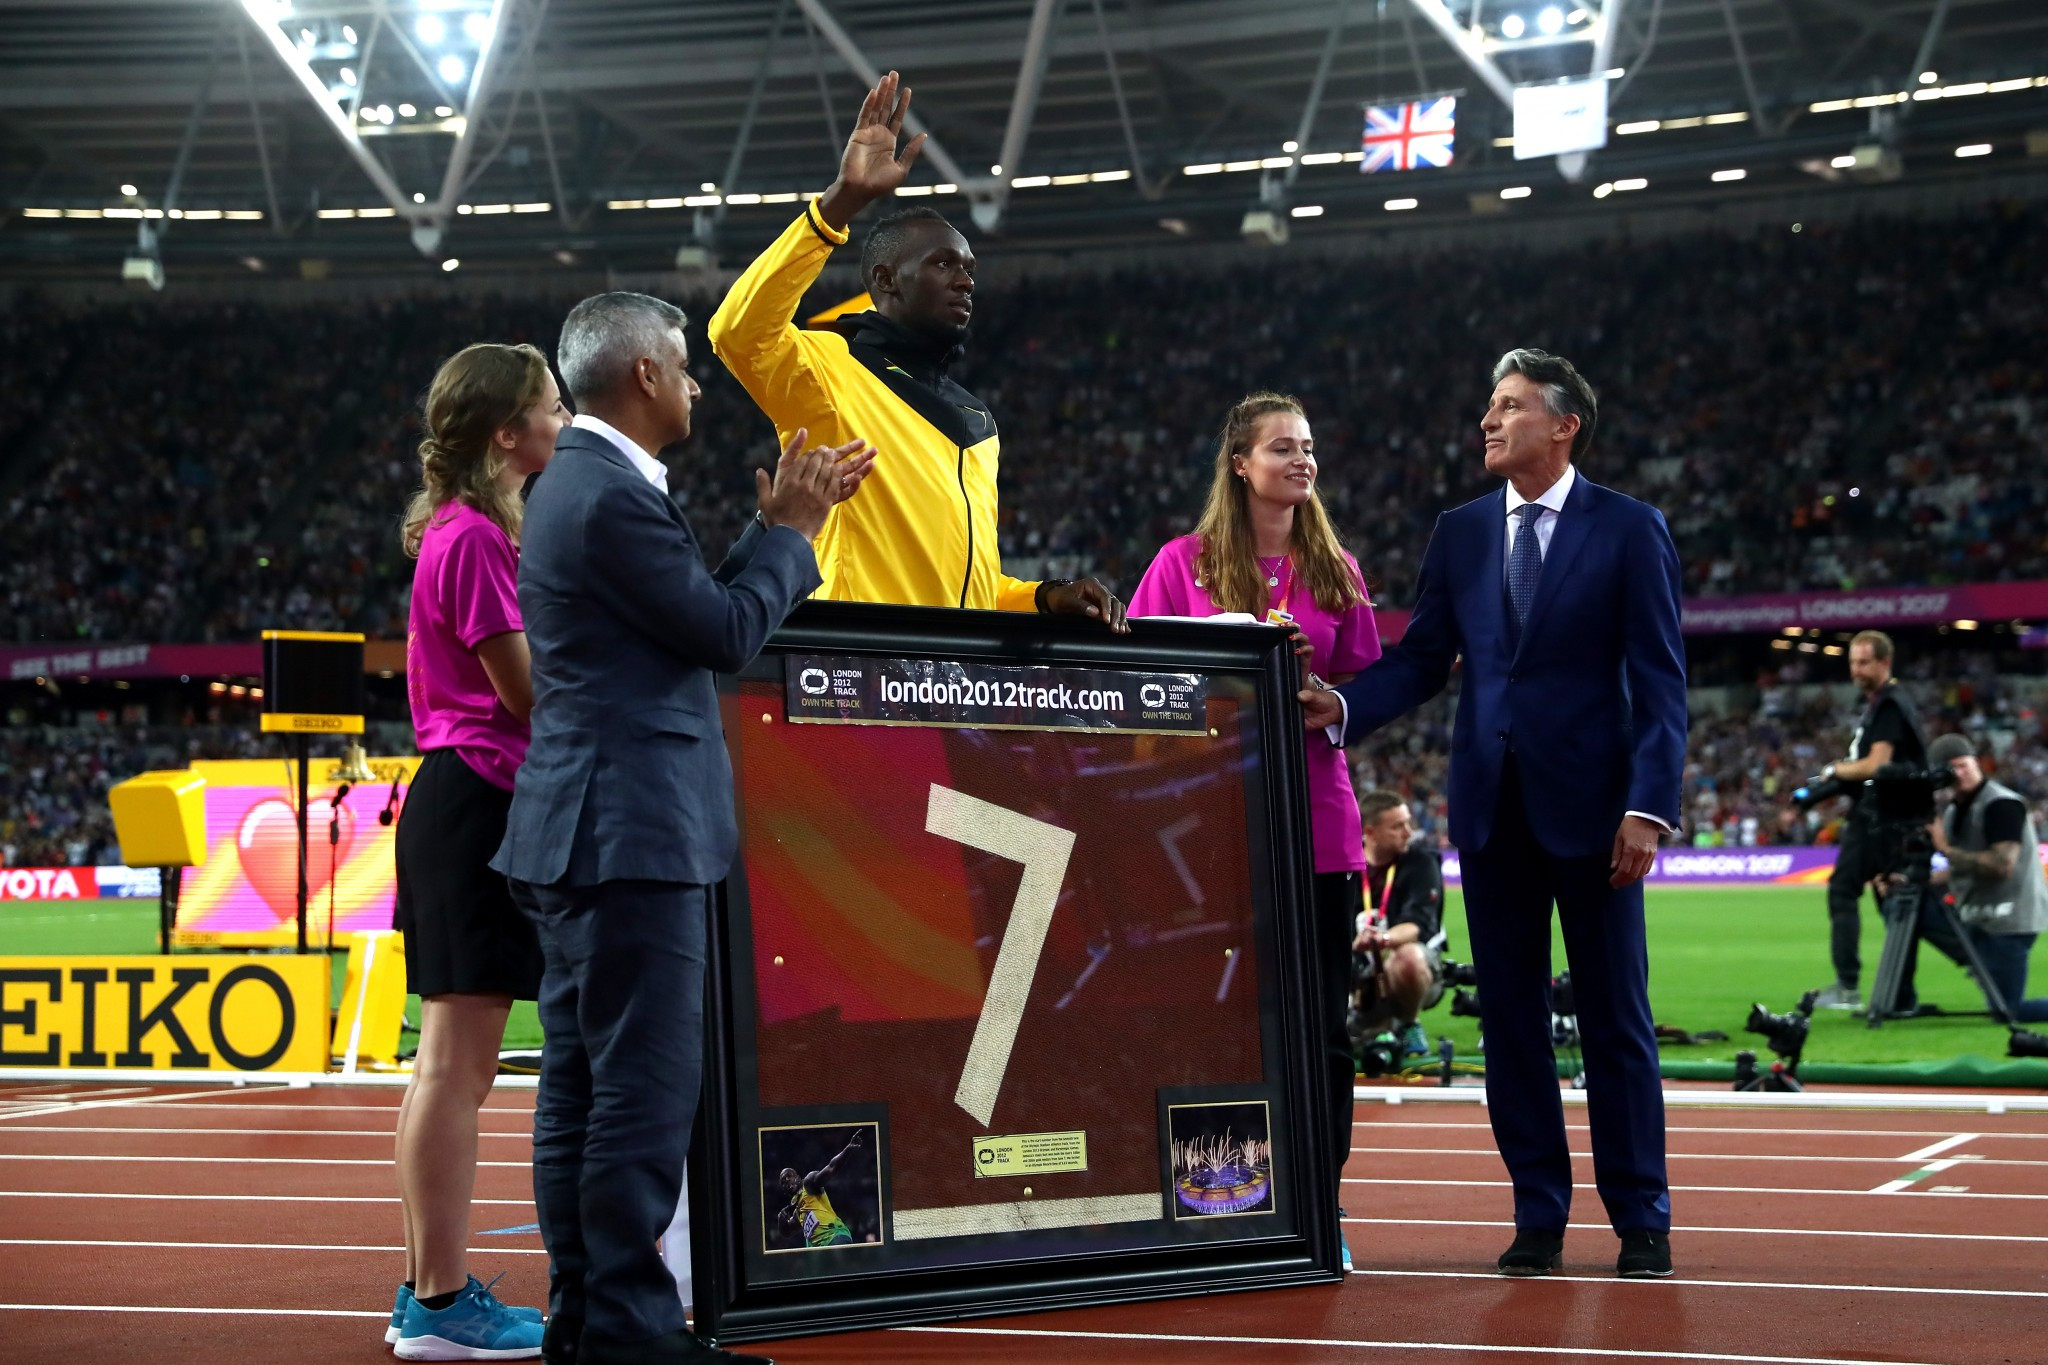 Usain Bolt was presented with a portion of the London 2012 track during his lap of honour ©Getty Images